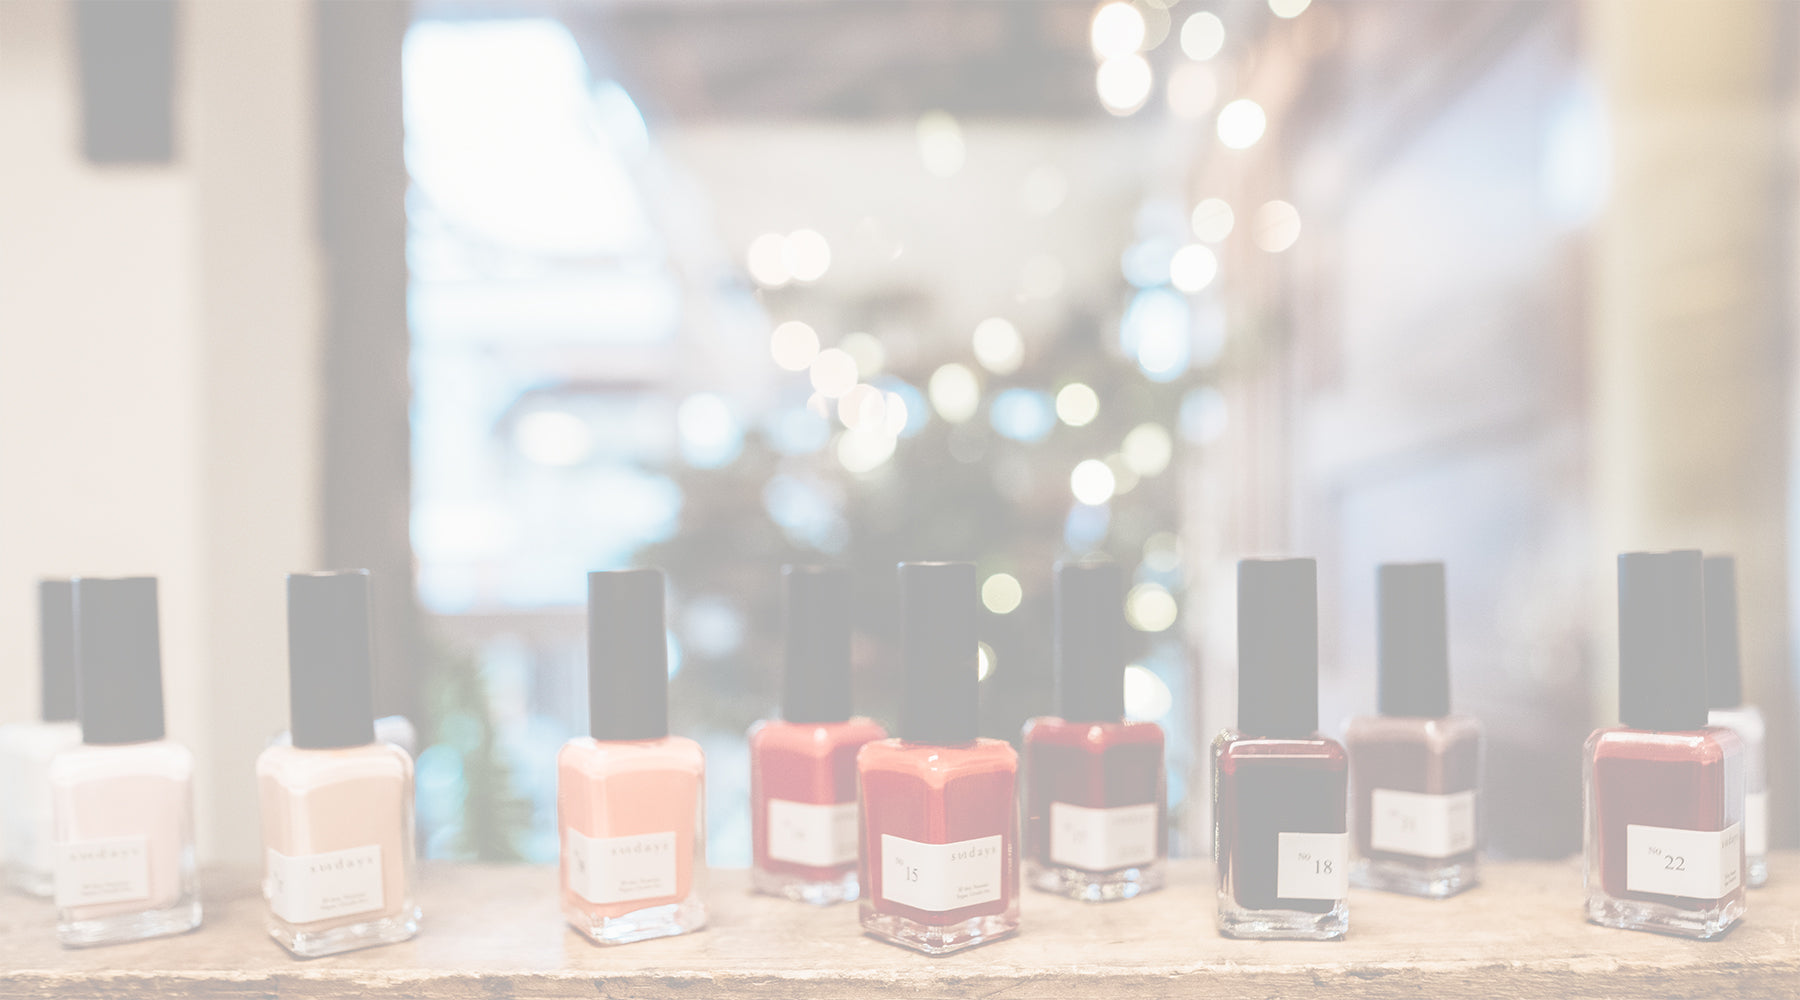 All natural nail polish display in front of window